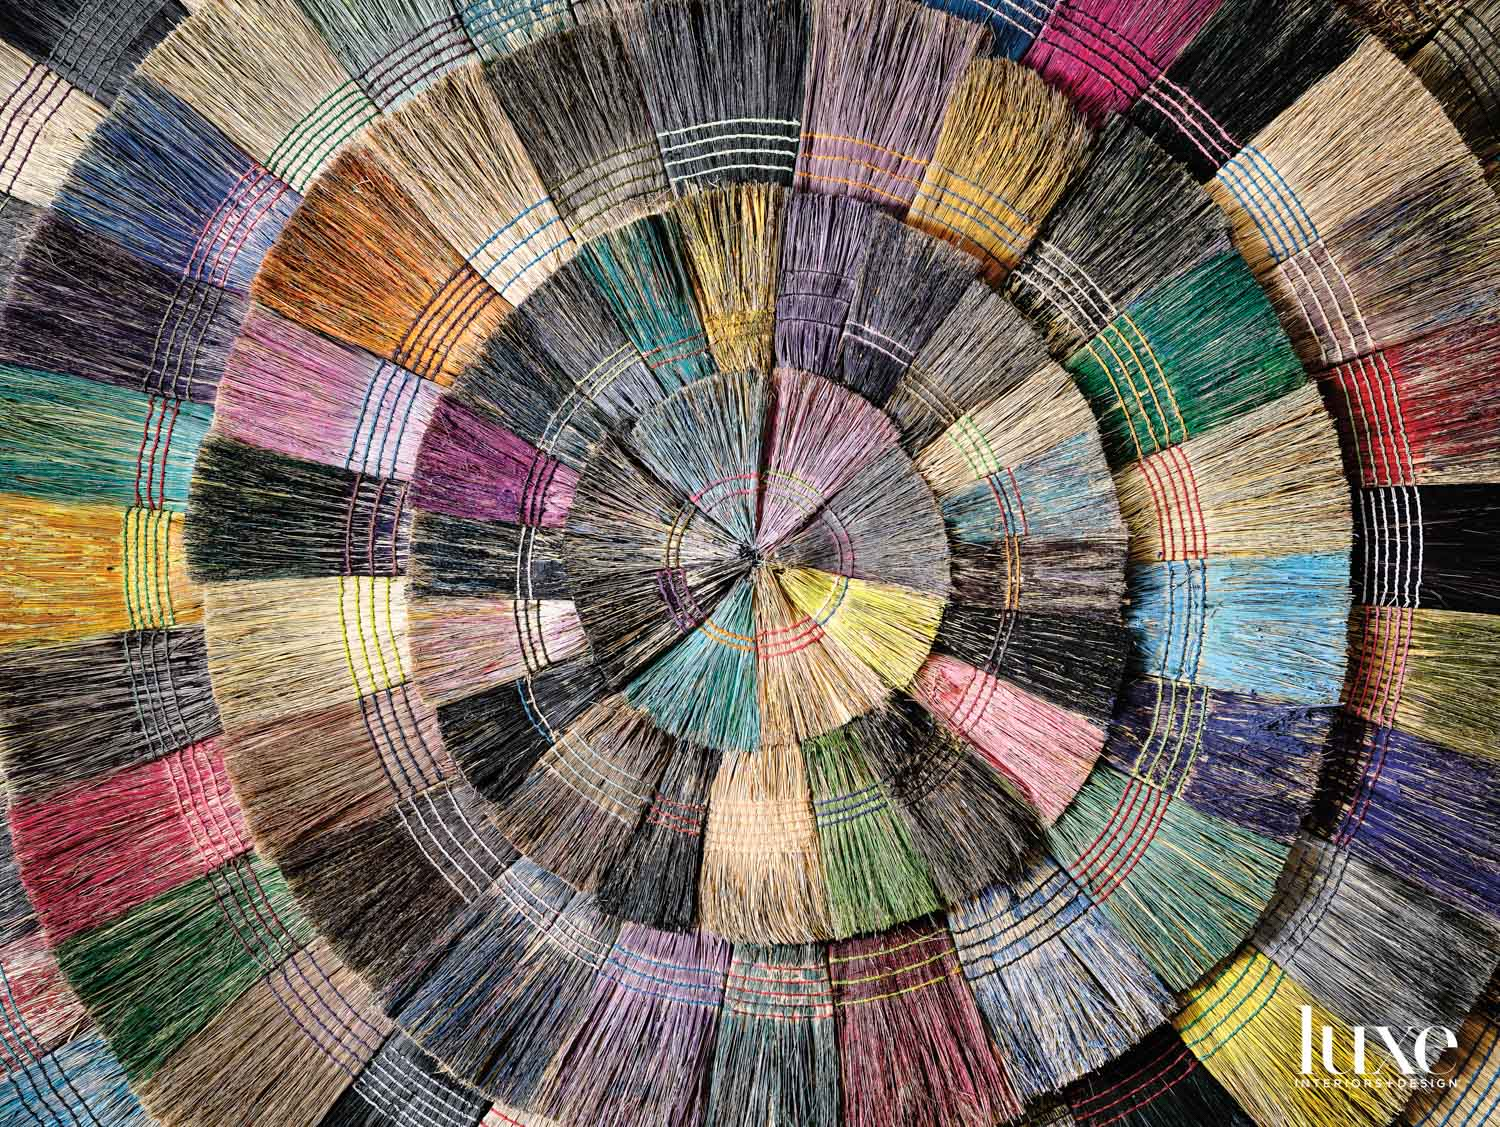 Painted brooms are composed into artwork.